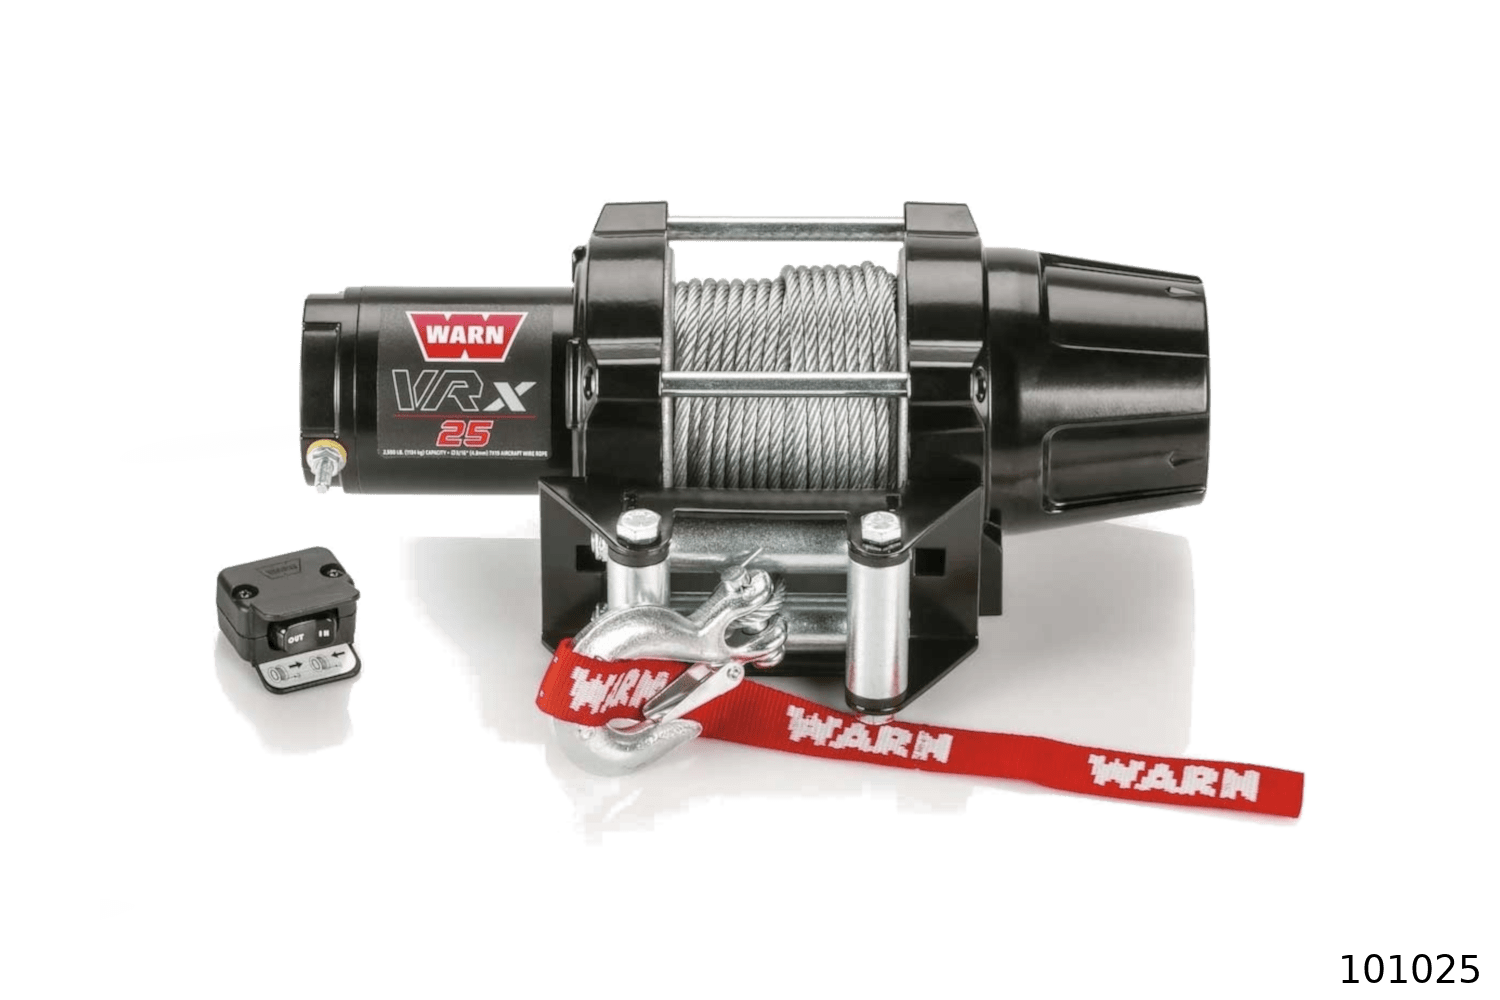 warn powersports vrx winches vr25 101025